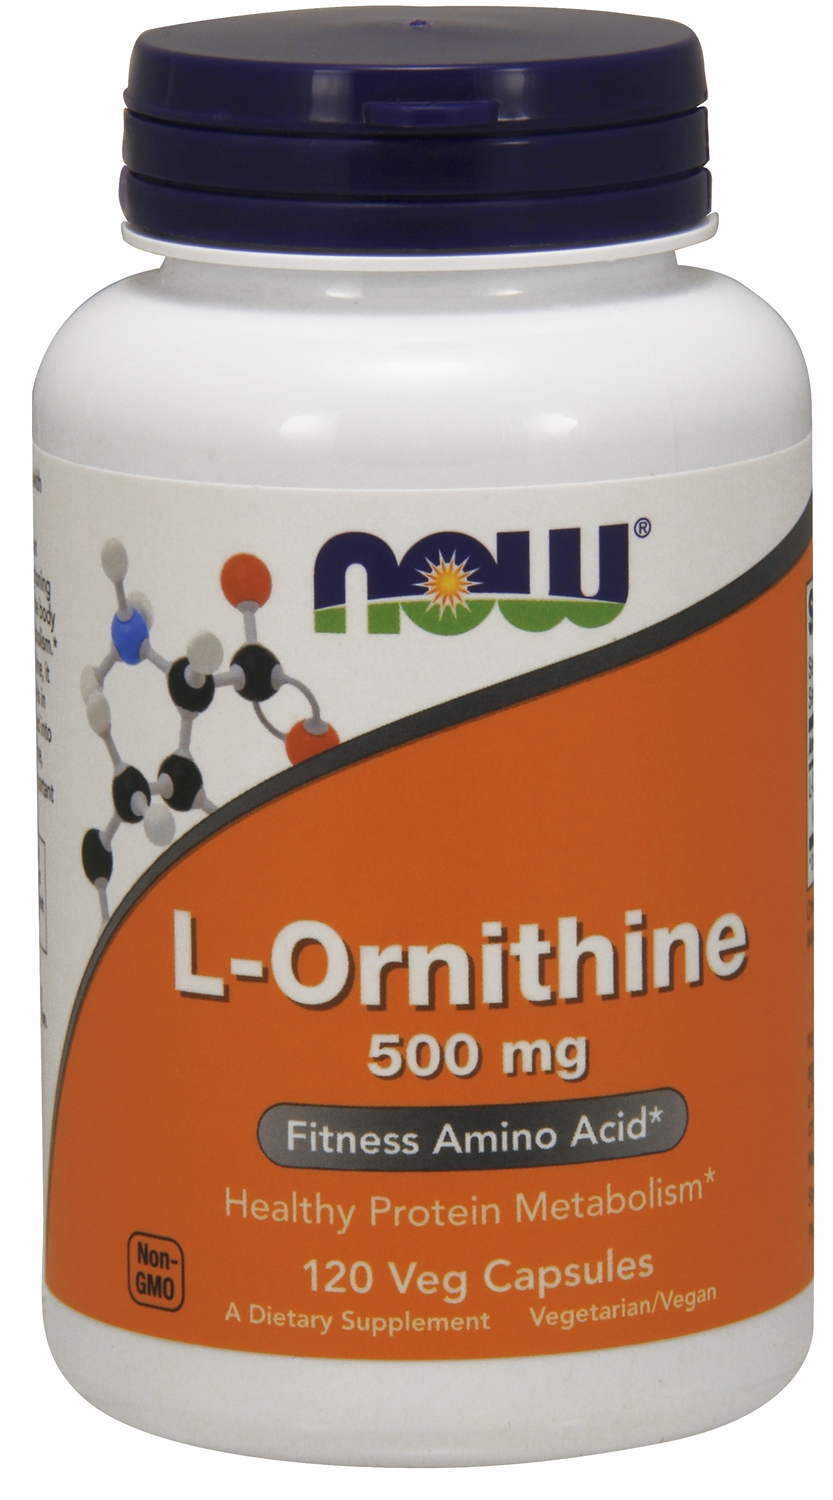 L-Ornithine 500 mg 120 caps by NOW